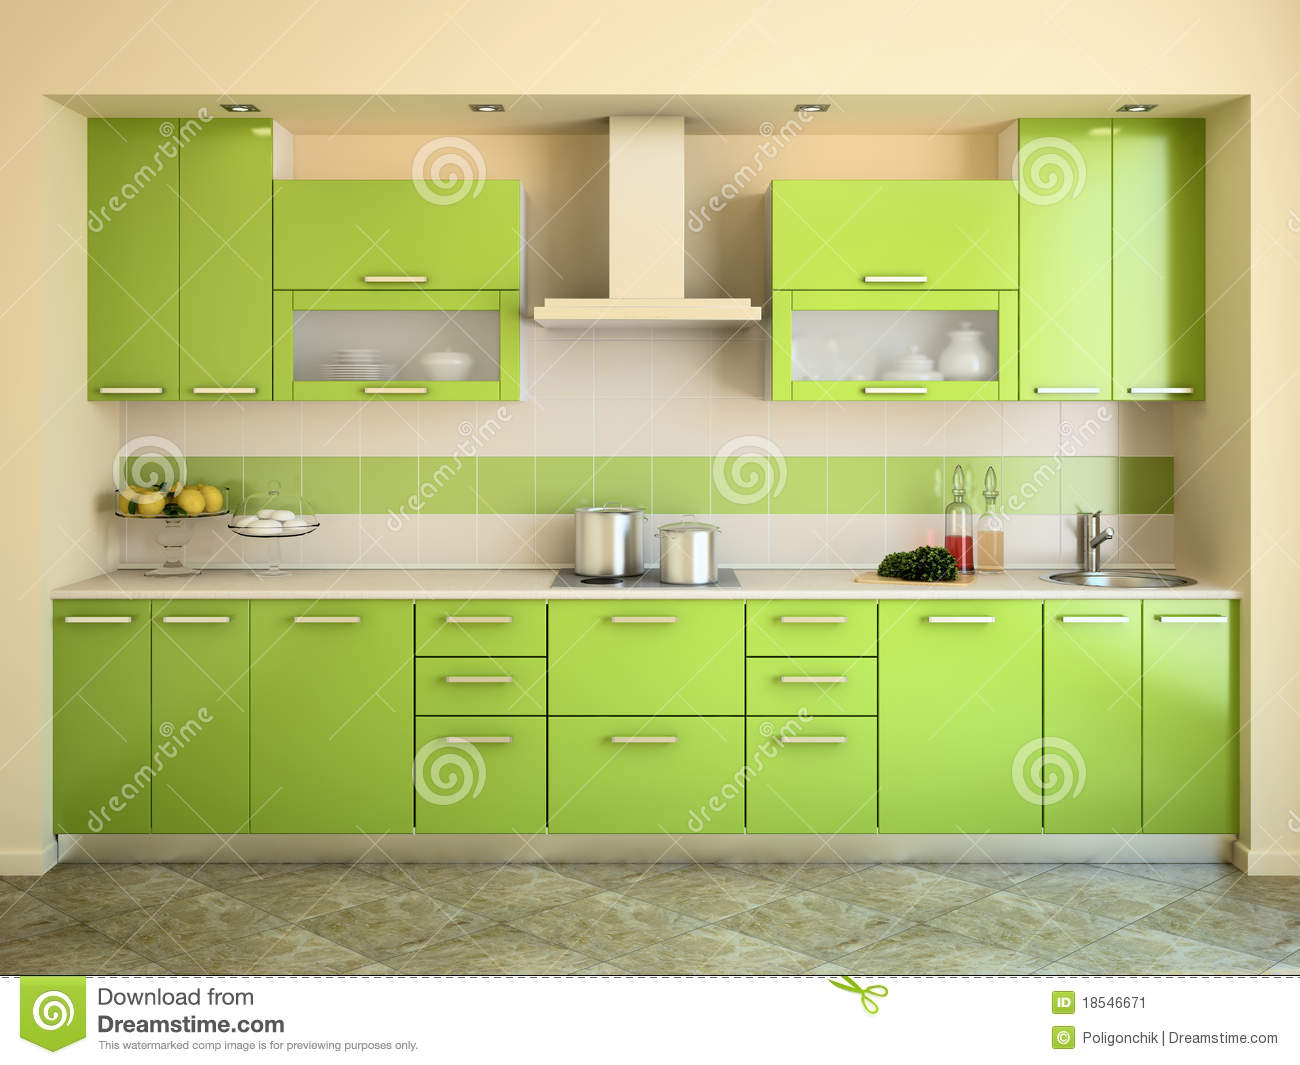 Cuisine verte moderne illustration stock image du home for Cuisine verte